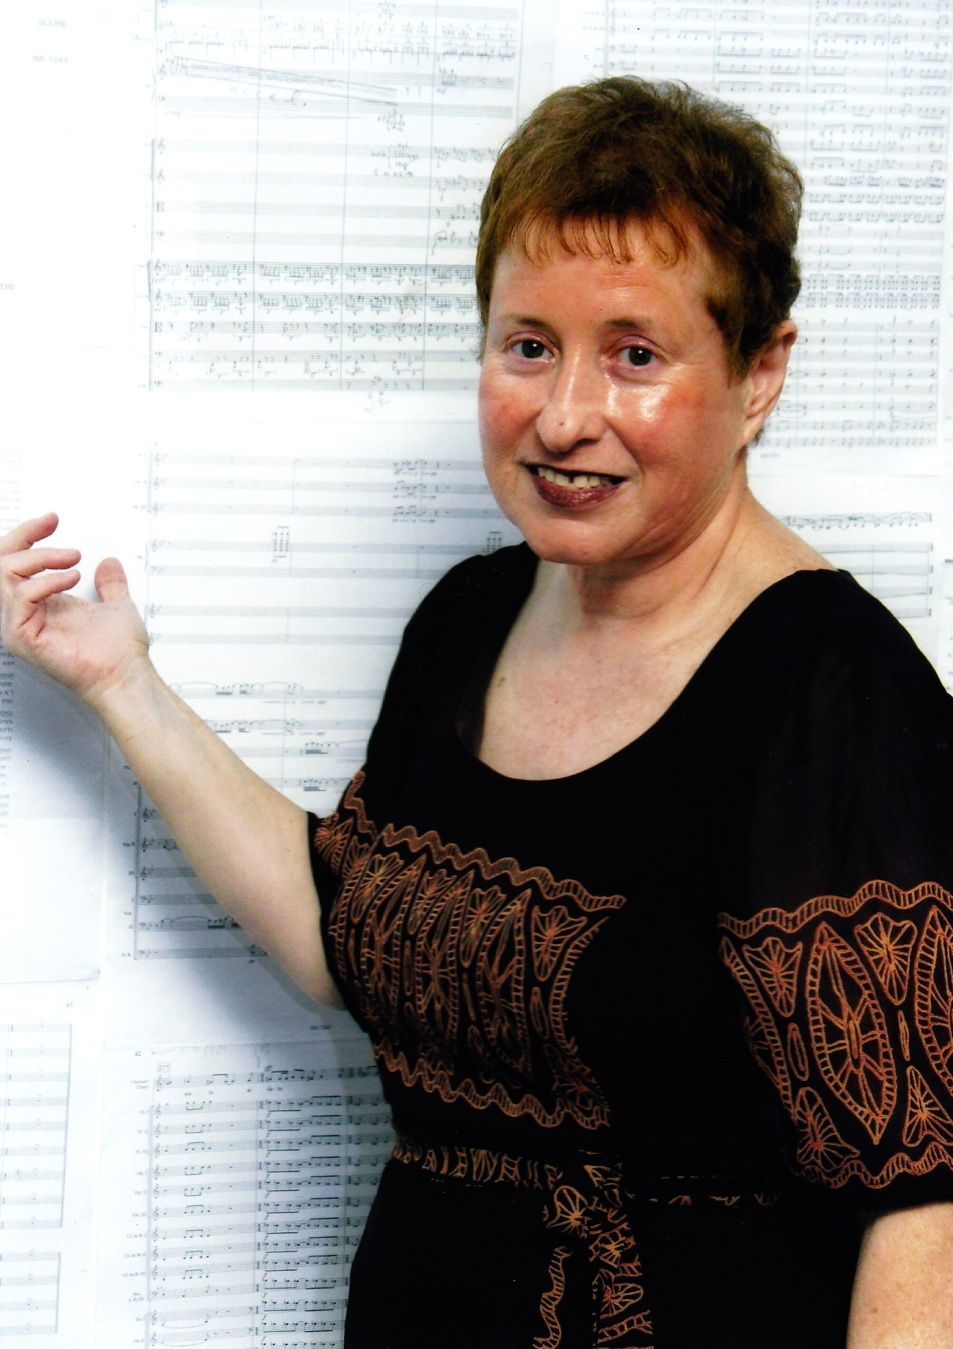 Tsippi Fleischer against the background of the score of Symphony No. 5